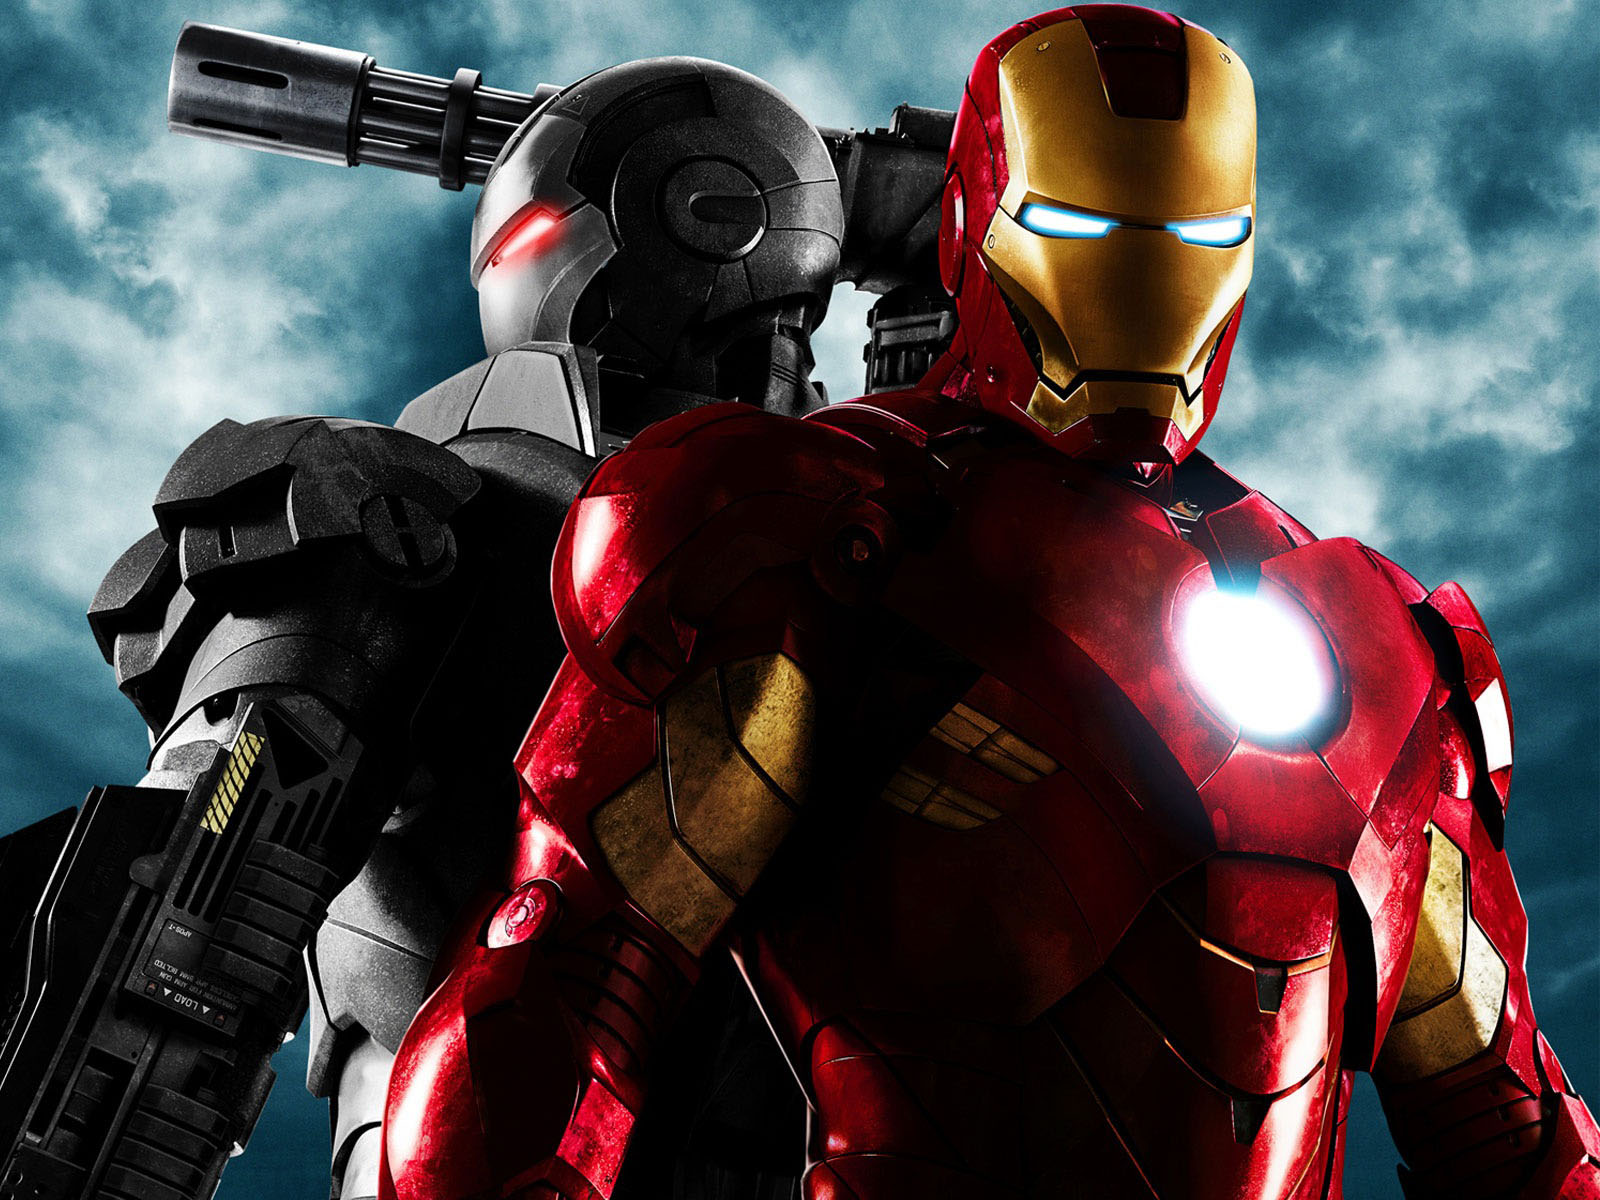 Steven Symes, Writer: Movie Review: Iron Man 3